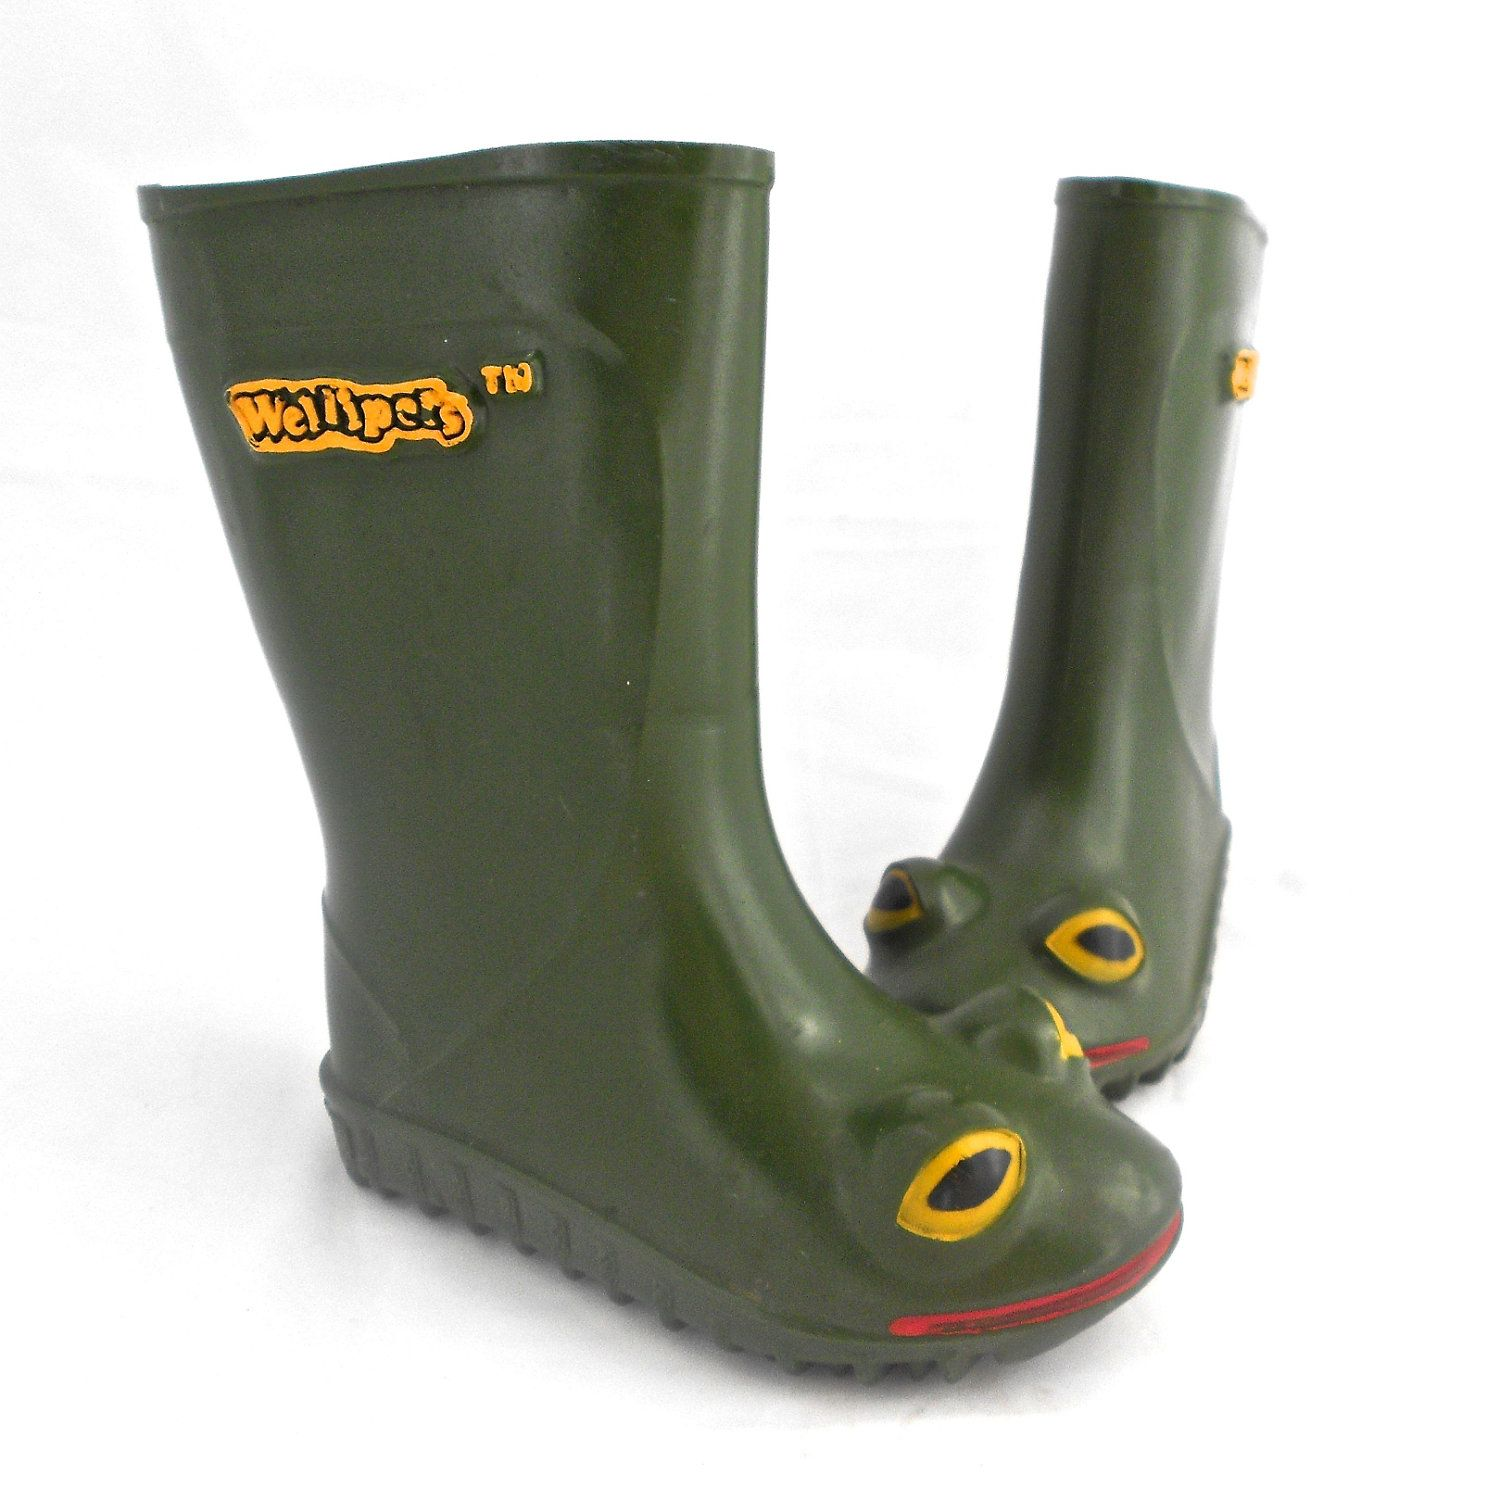 Original Childrens WelliPets Green Frog Rain Boots - TREASURY Item ...